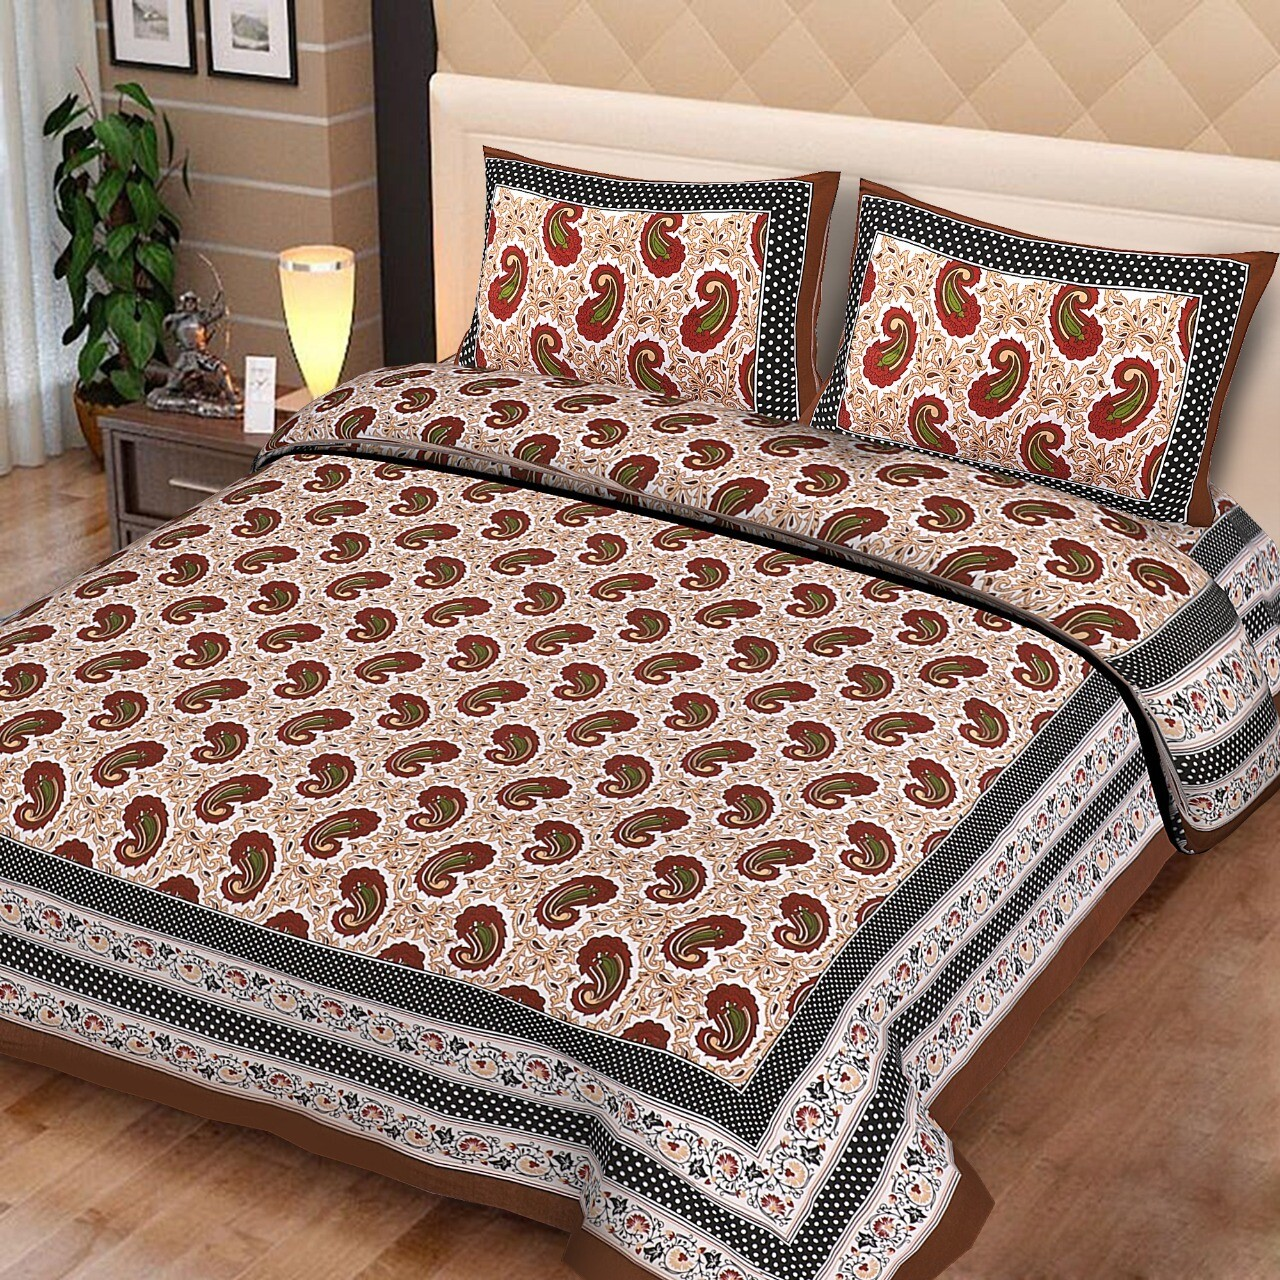 2023  Double Bedsheets With Two Pillow Cover